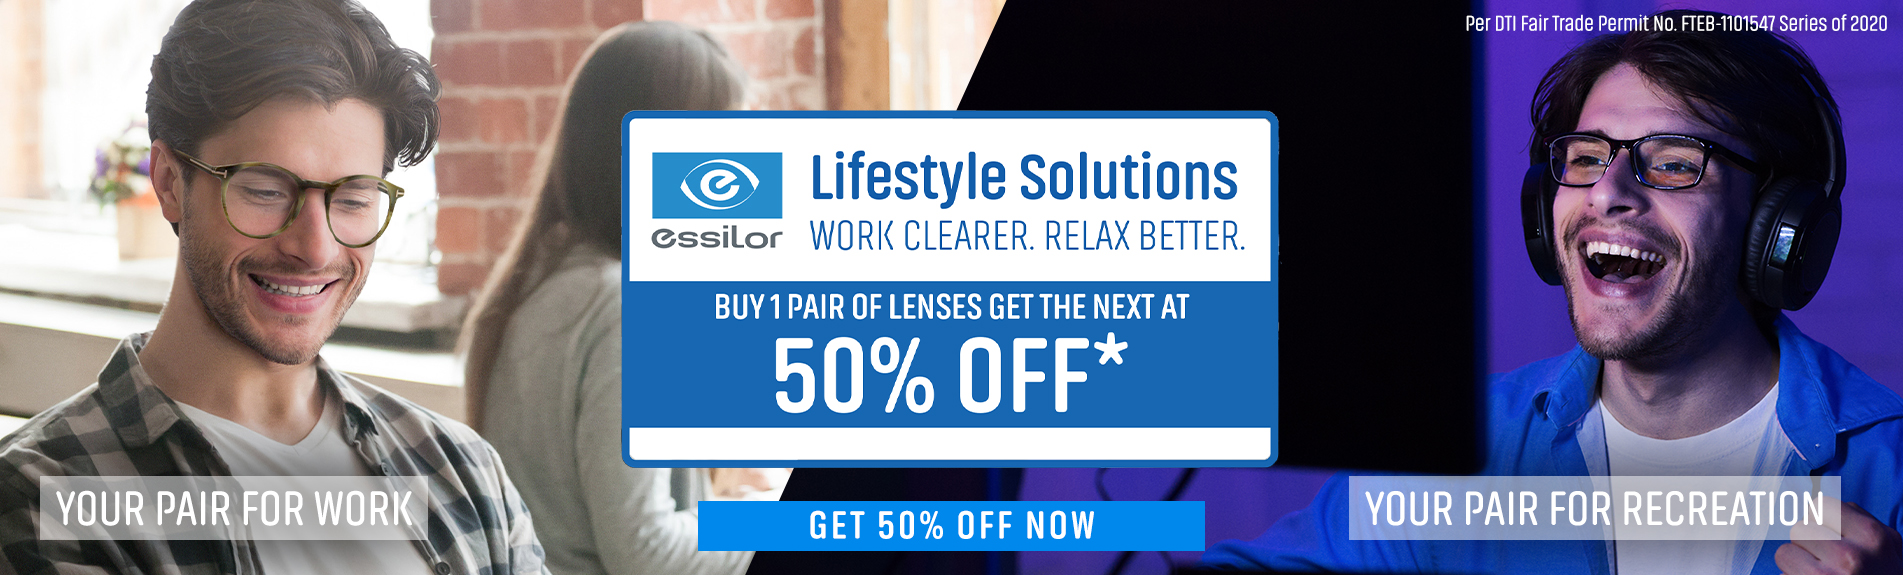 Get 50% Off Your Second Pair of Lenses